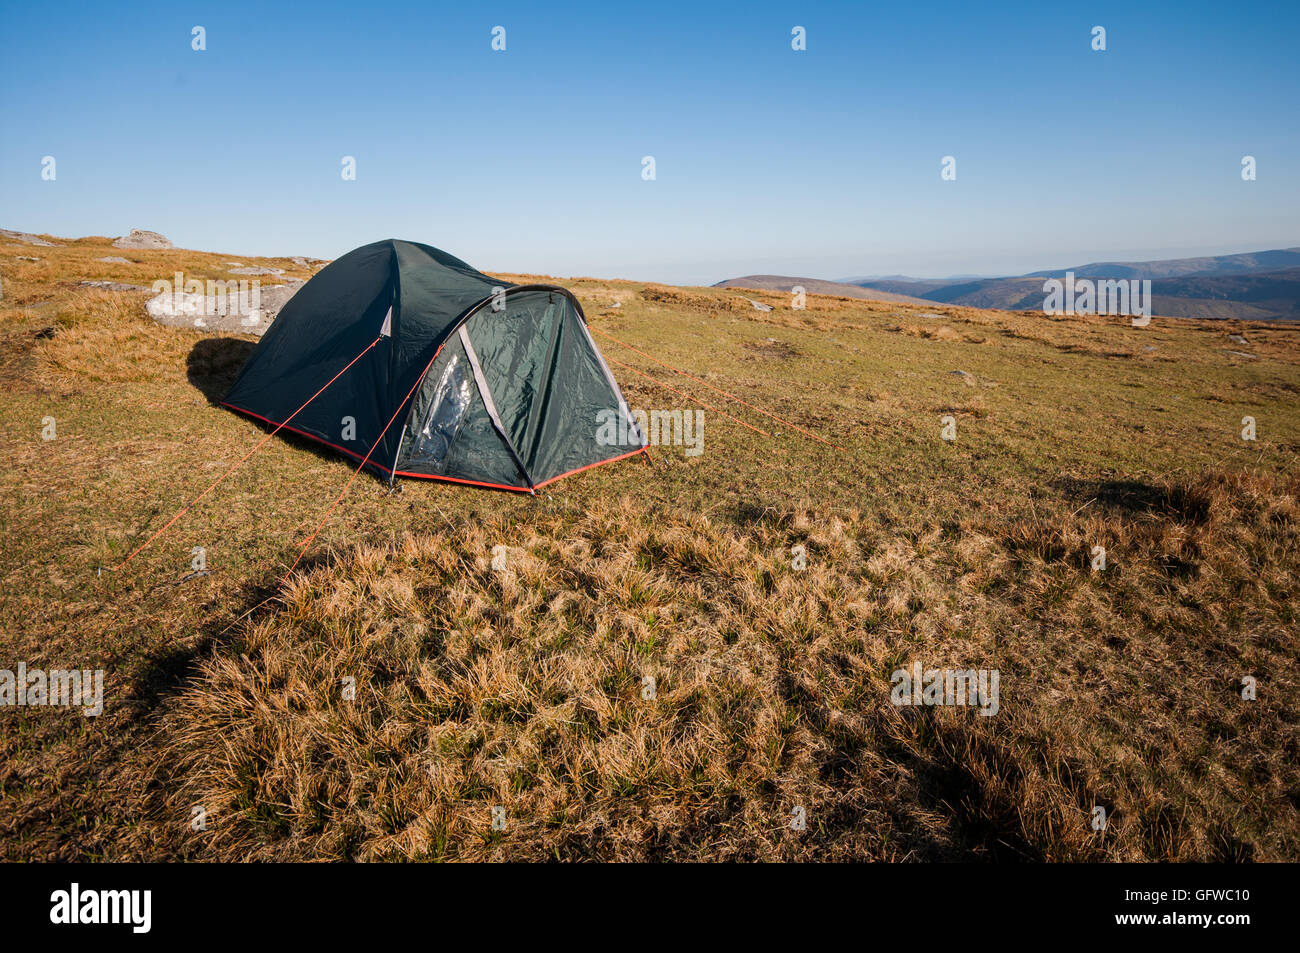 Tent pitched on upland grassland in Wicklow mountains of Ireland - Stock Image